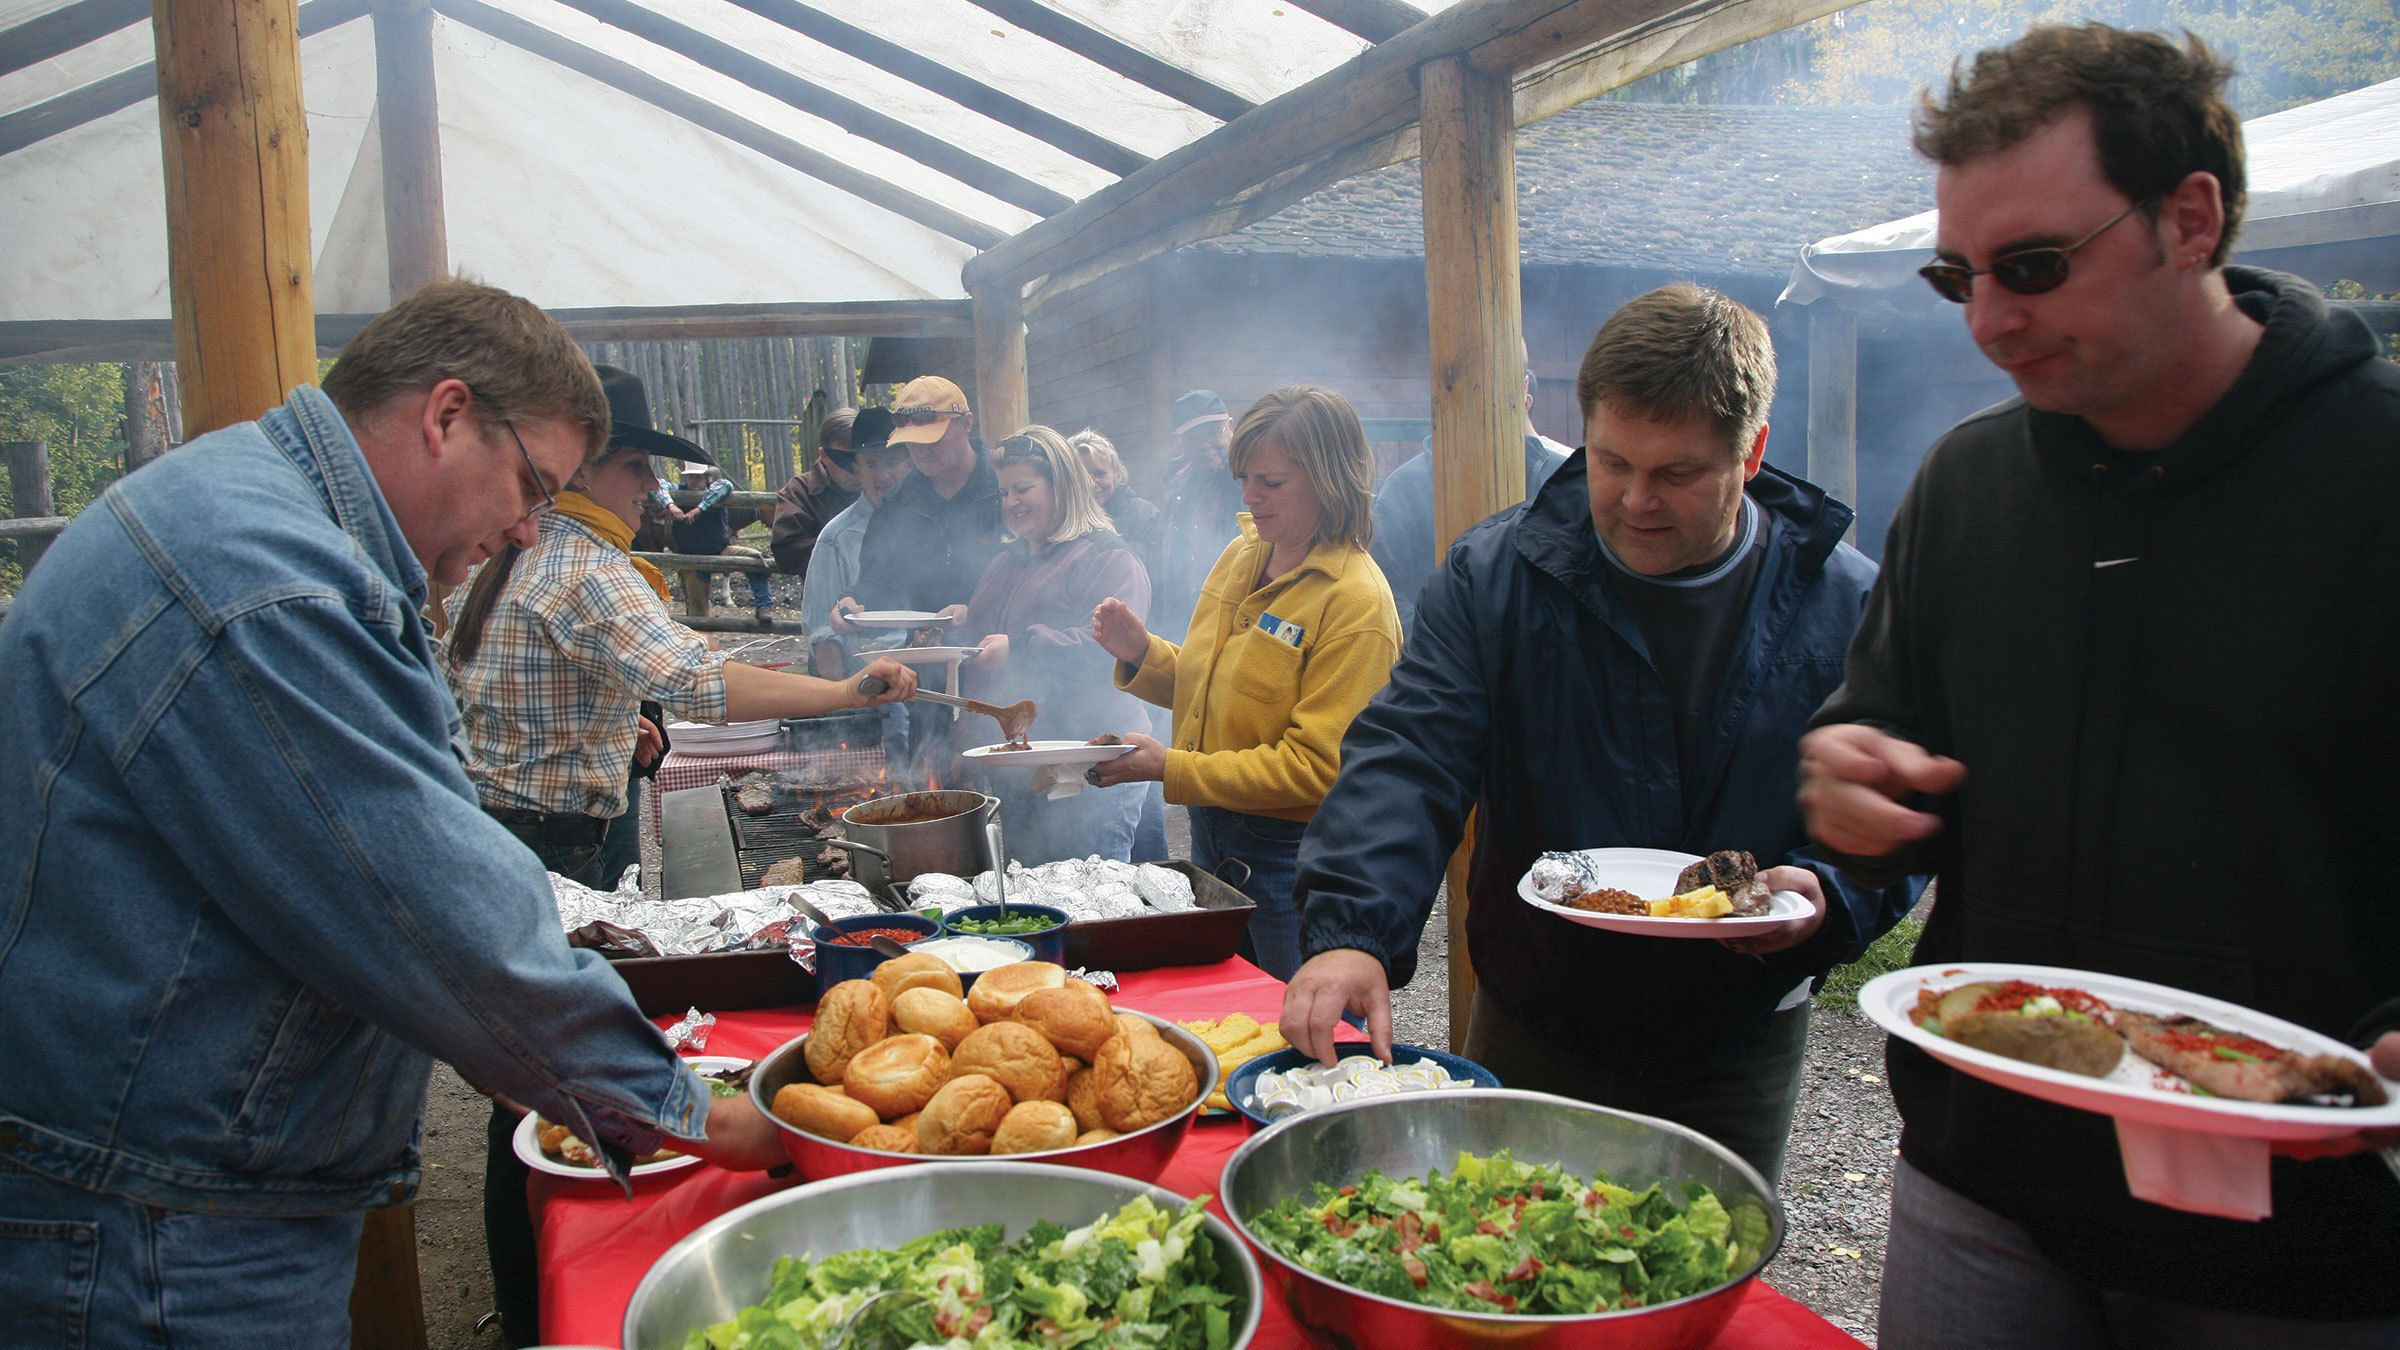 Guests preparing to feast on a delicious meal featuring grilled steak